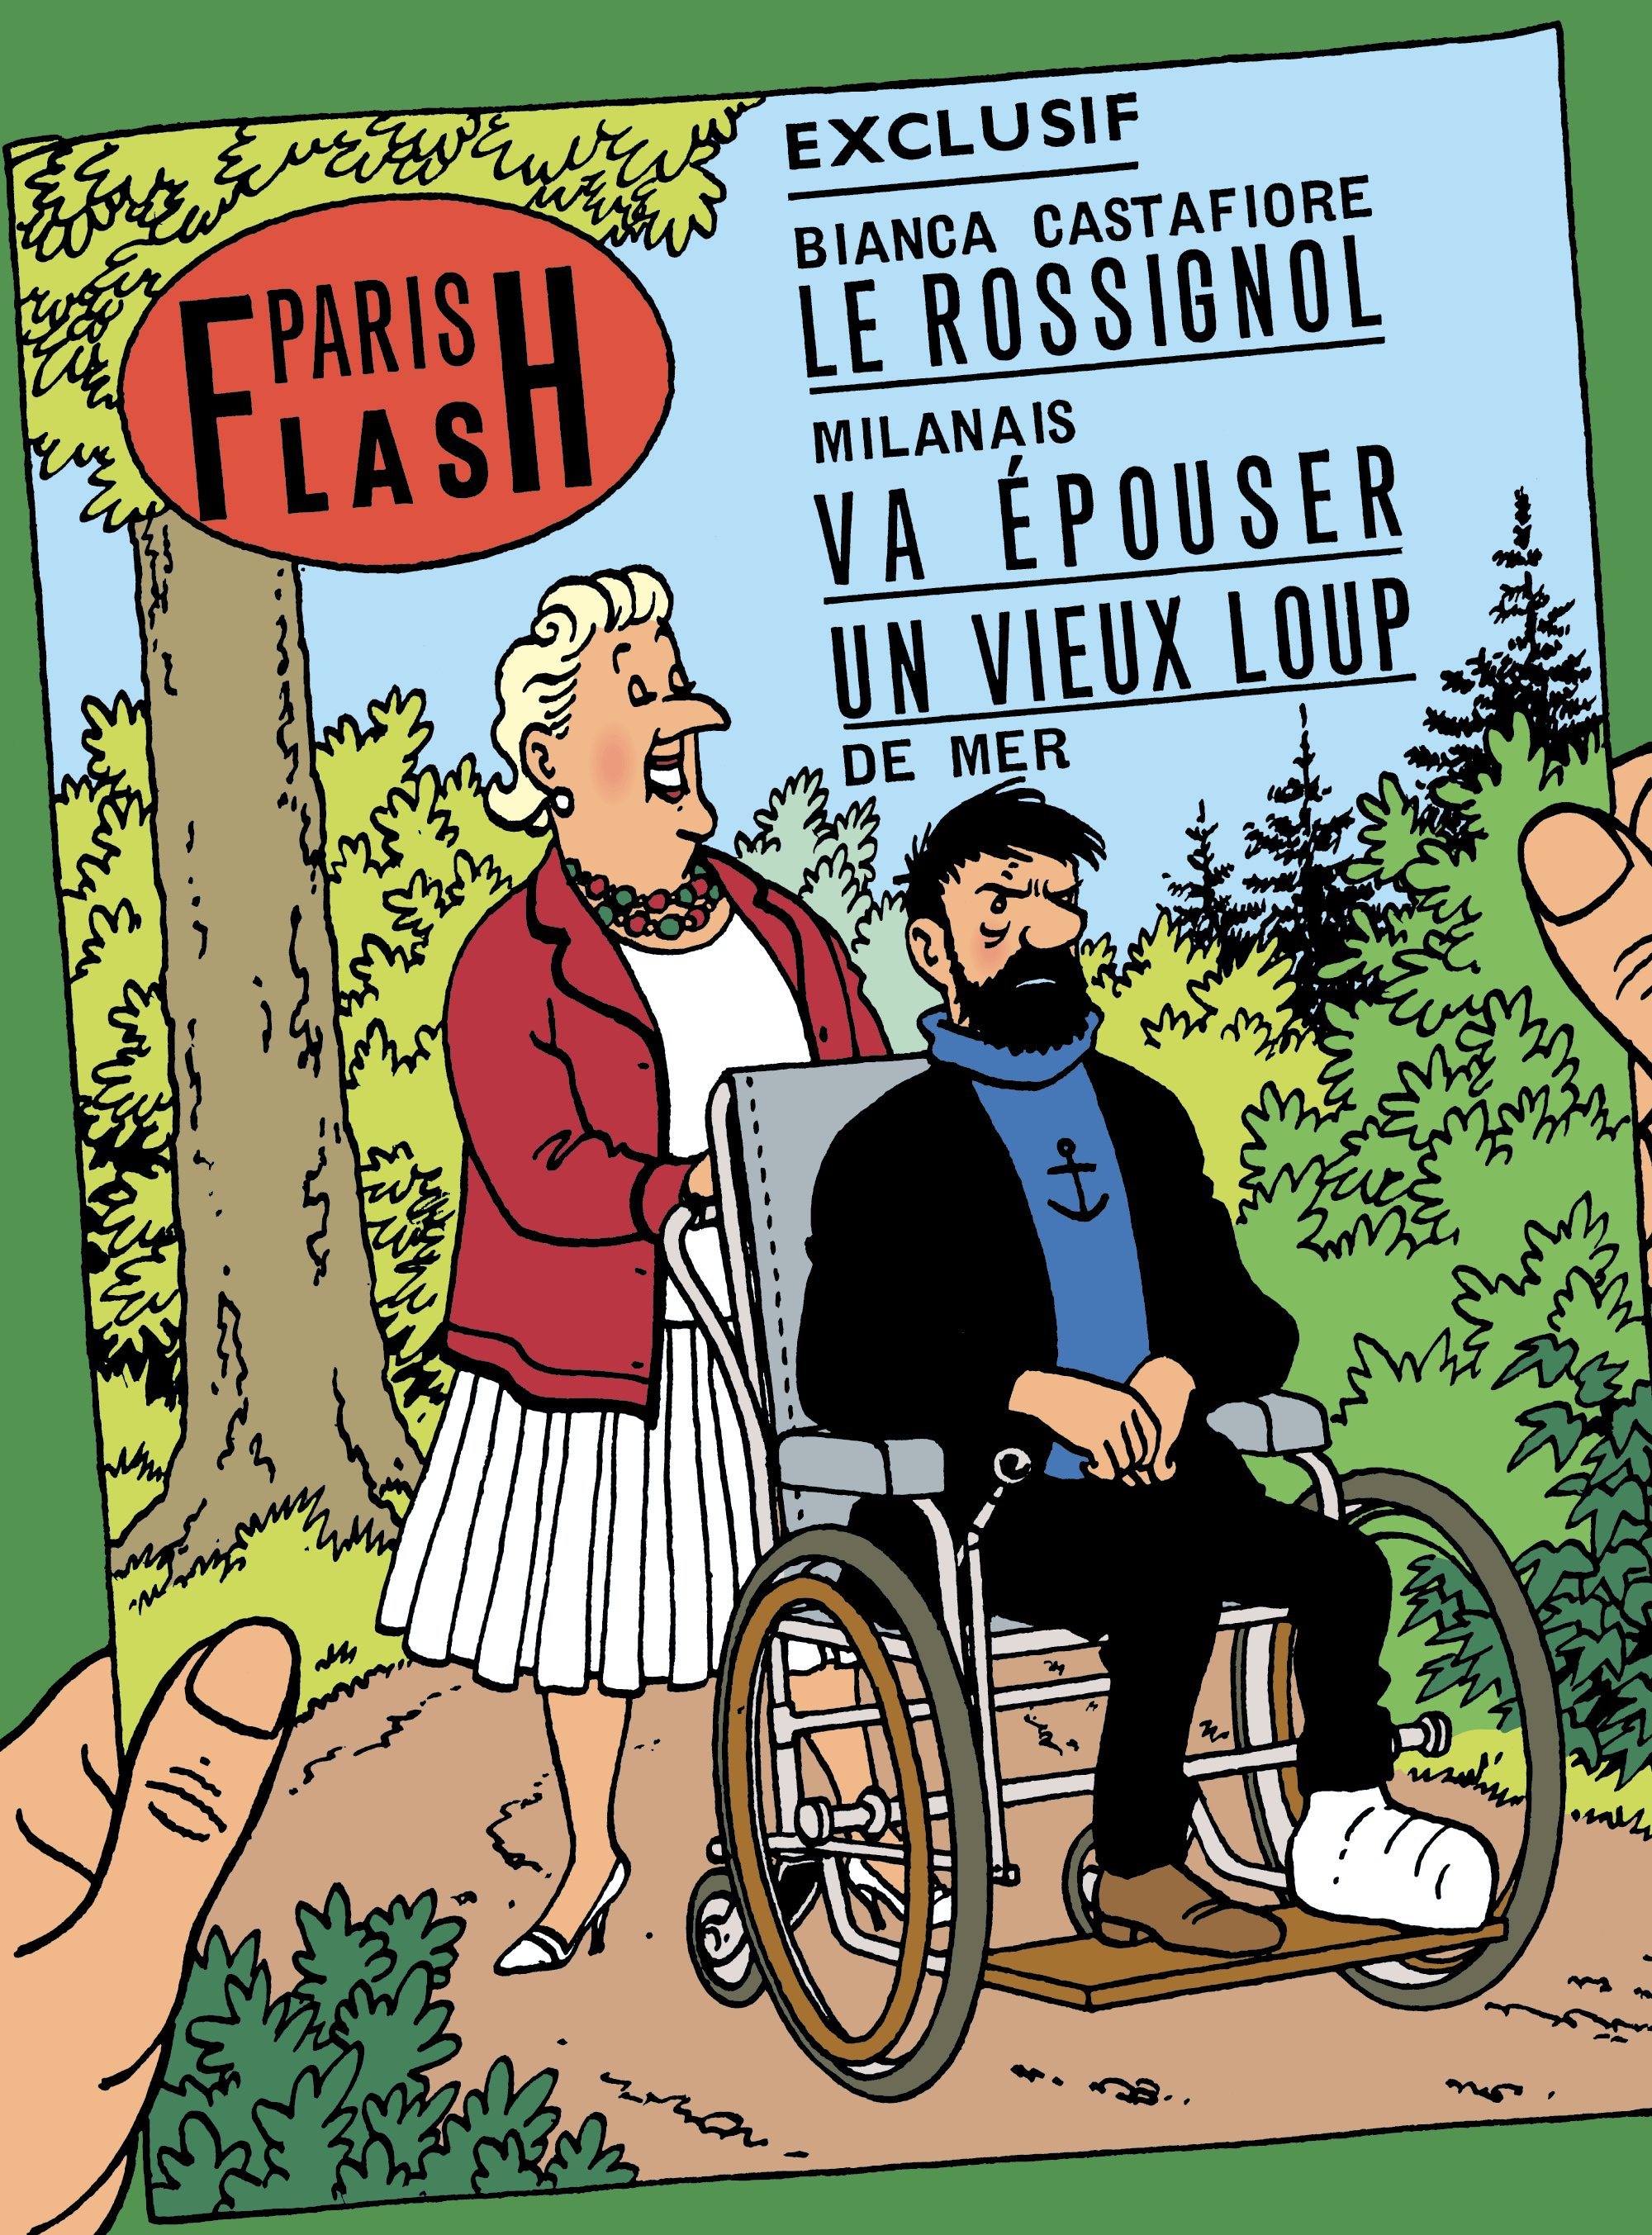 Couverture de Paris Flash - Le capitaine Haddock en fauteuil et la Castafiore